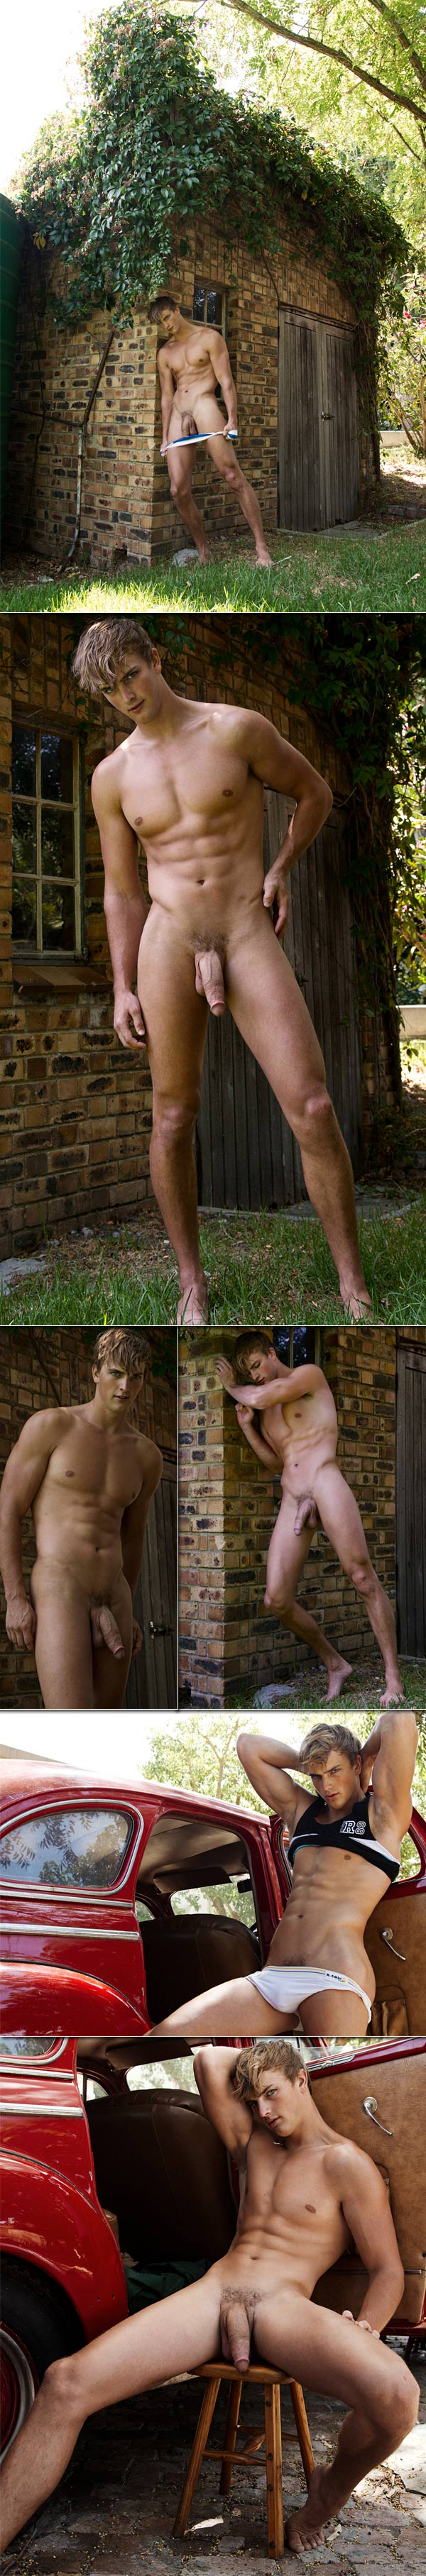 Mick Lovell (Art Collection) (South Africa Photoshoot) at BelAmiOnline.com